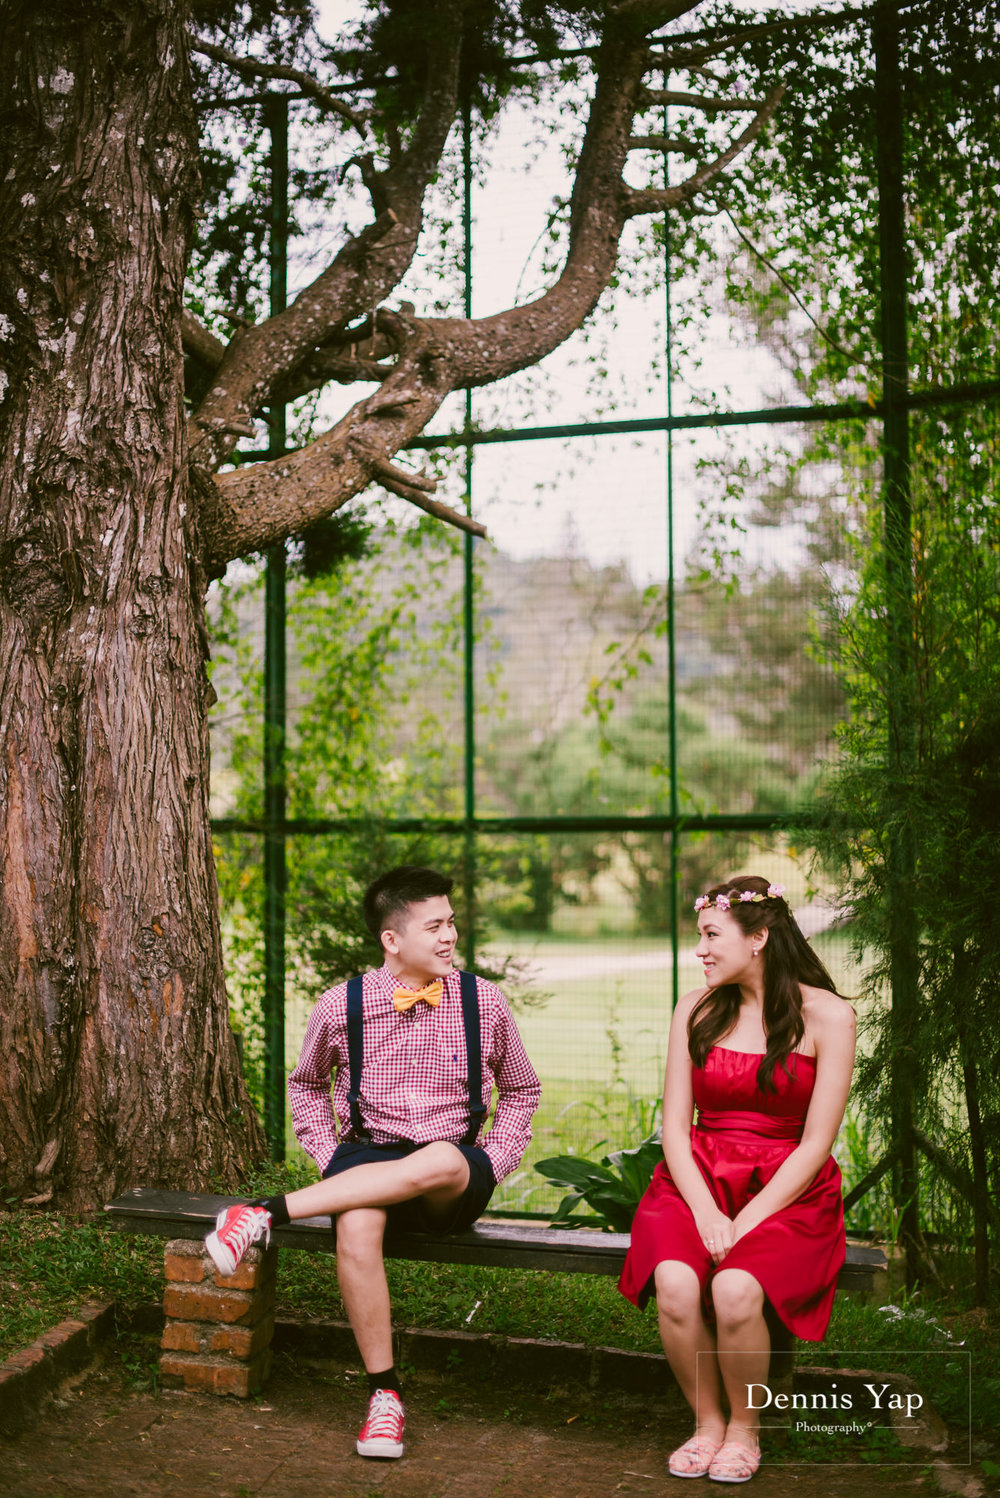 chay xiang alicia pre wedding cameron highland smoke house tea plantation dennis yap photography-9.jpg